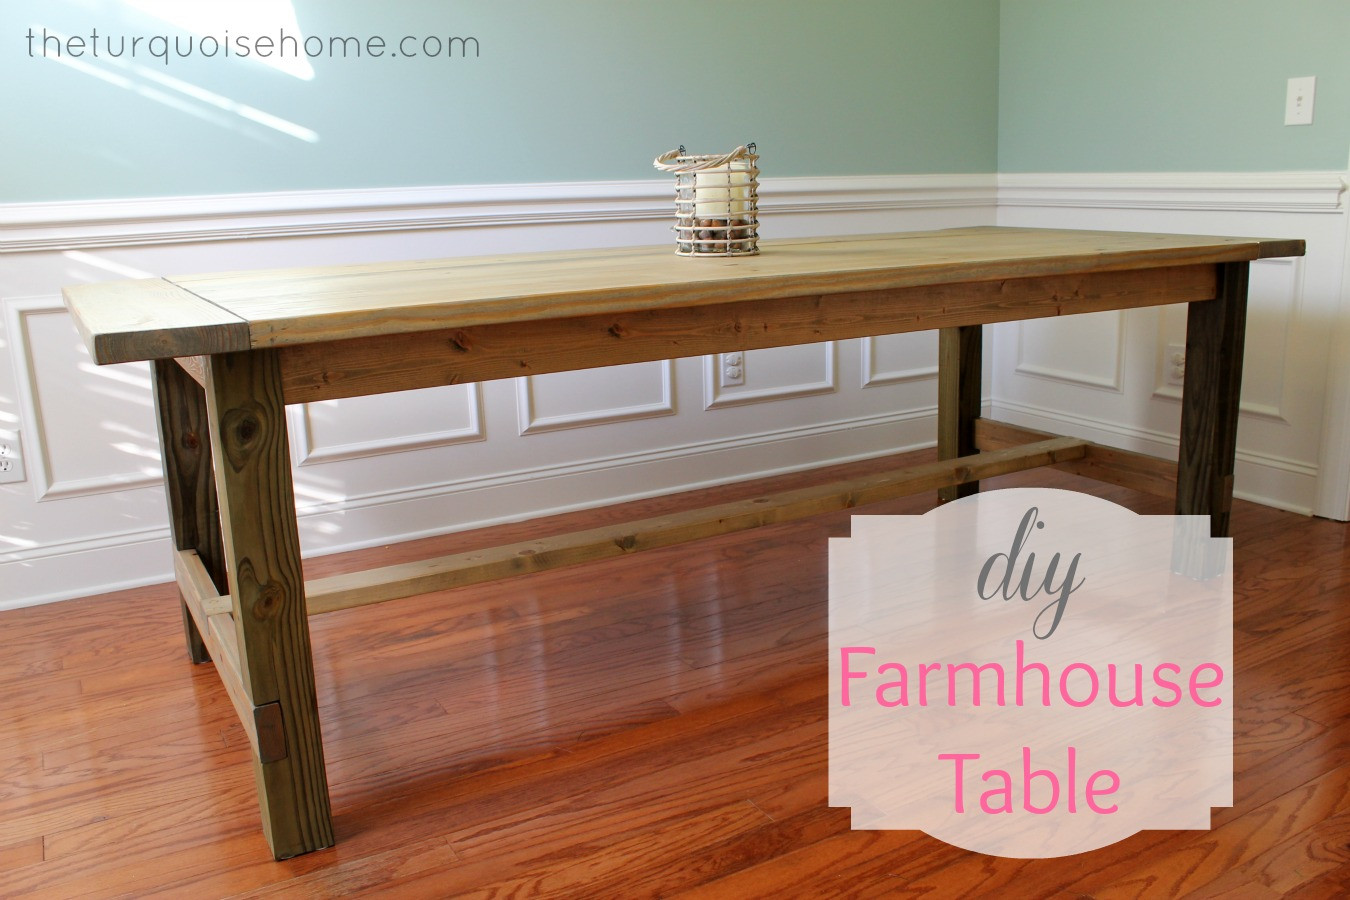 Best ideas about DIY Farmhouse Table Plans . Save or Pin Farmhouse Table Fundamental Woodworking Projects For Now.